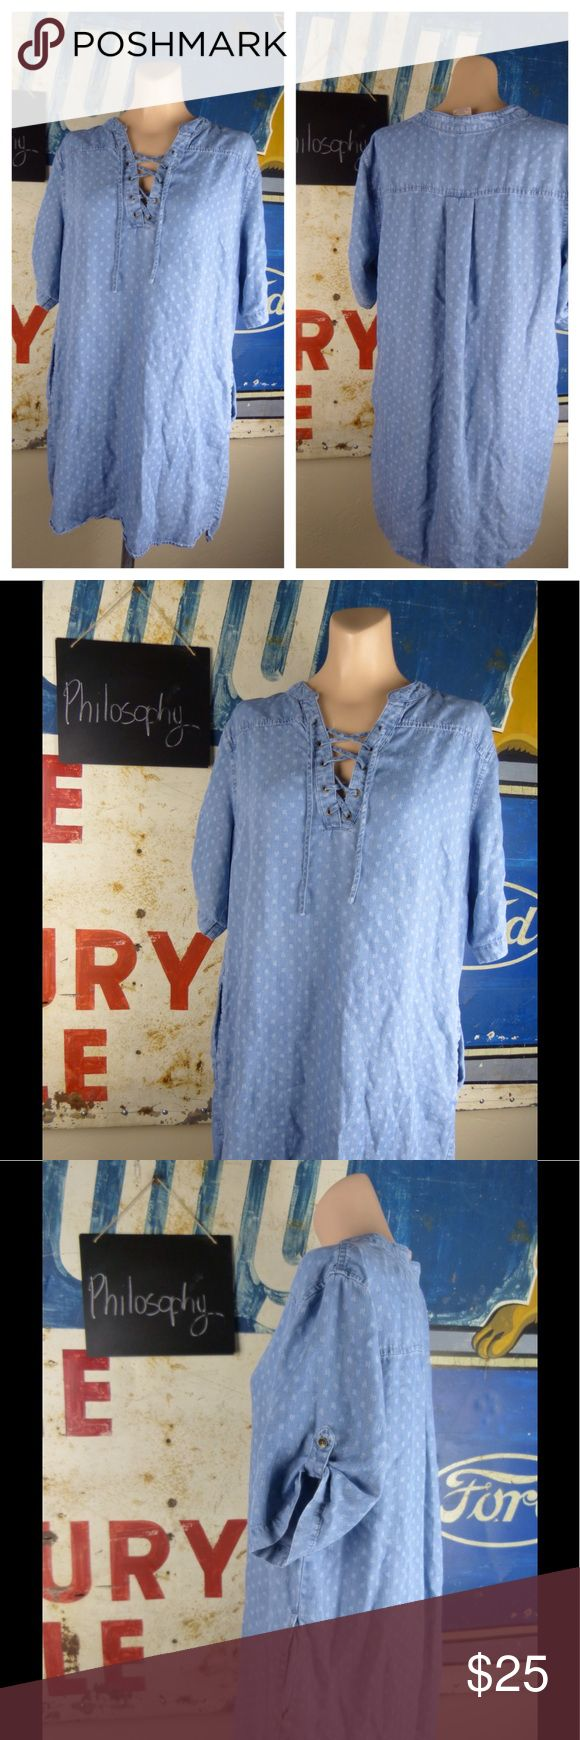 "Philosophy Polka Dot Chambray Dress Size XL Excellent condition.  Tencel.  34"" length.  23"" side to side at the under arm. Philosophy Dresses"